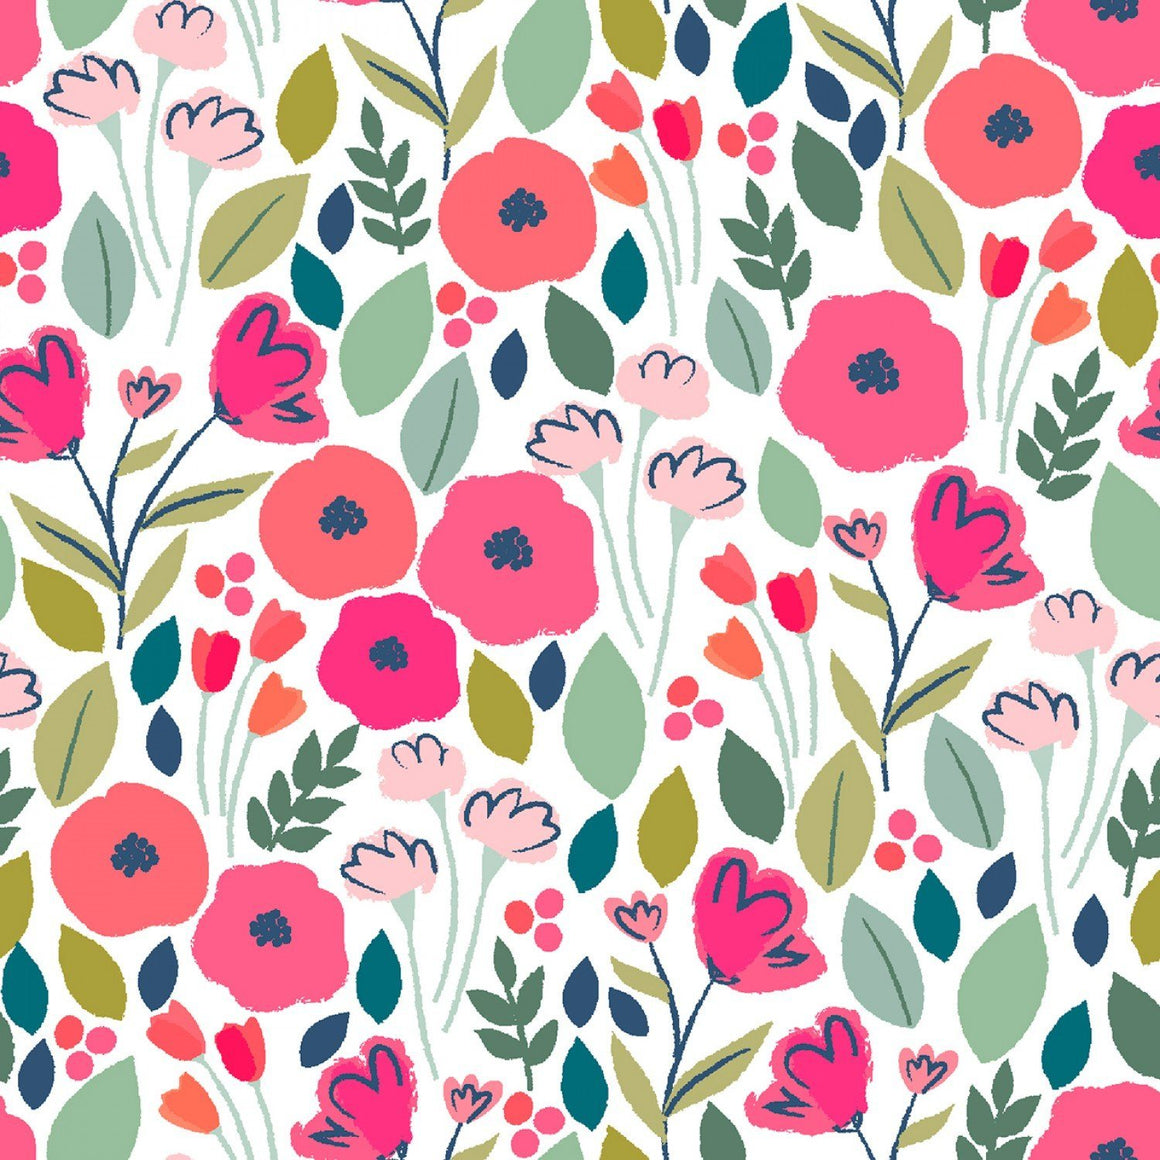 Magenta Coral Green and Pink Poppy Field Floral Cotton Spandex Jersey Knit, Dear Stella Knits Collection, 1 yard - Raspberry Creek Fabrics